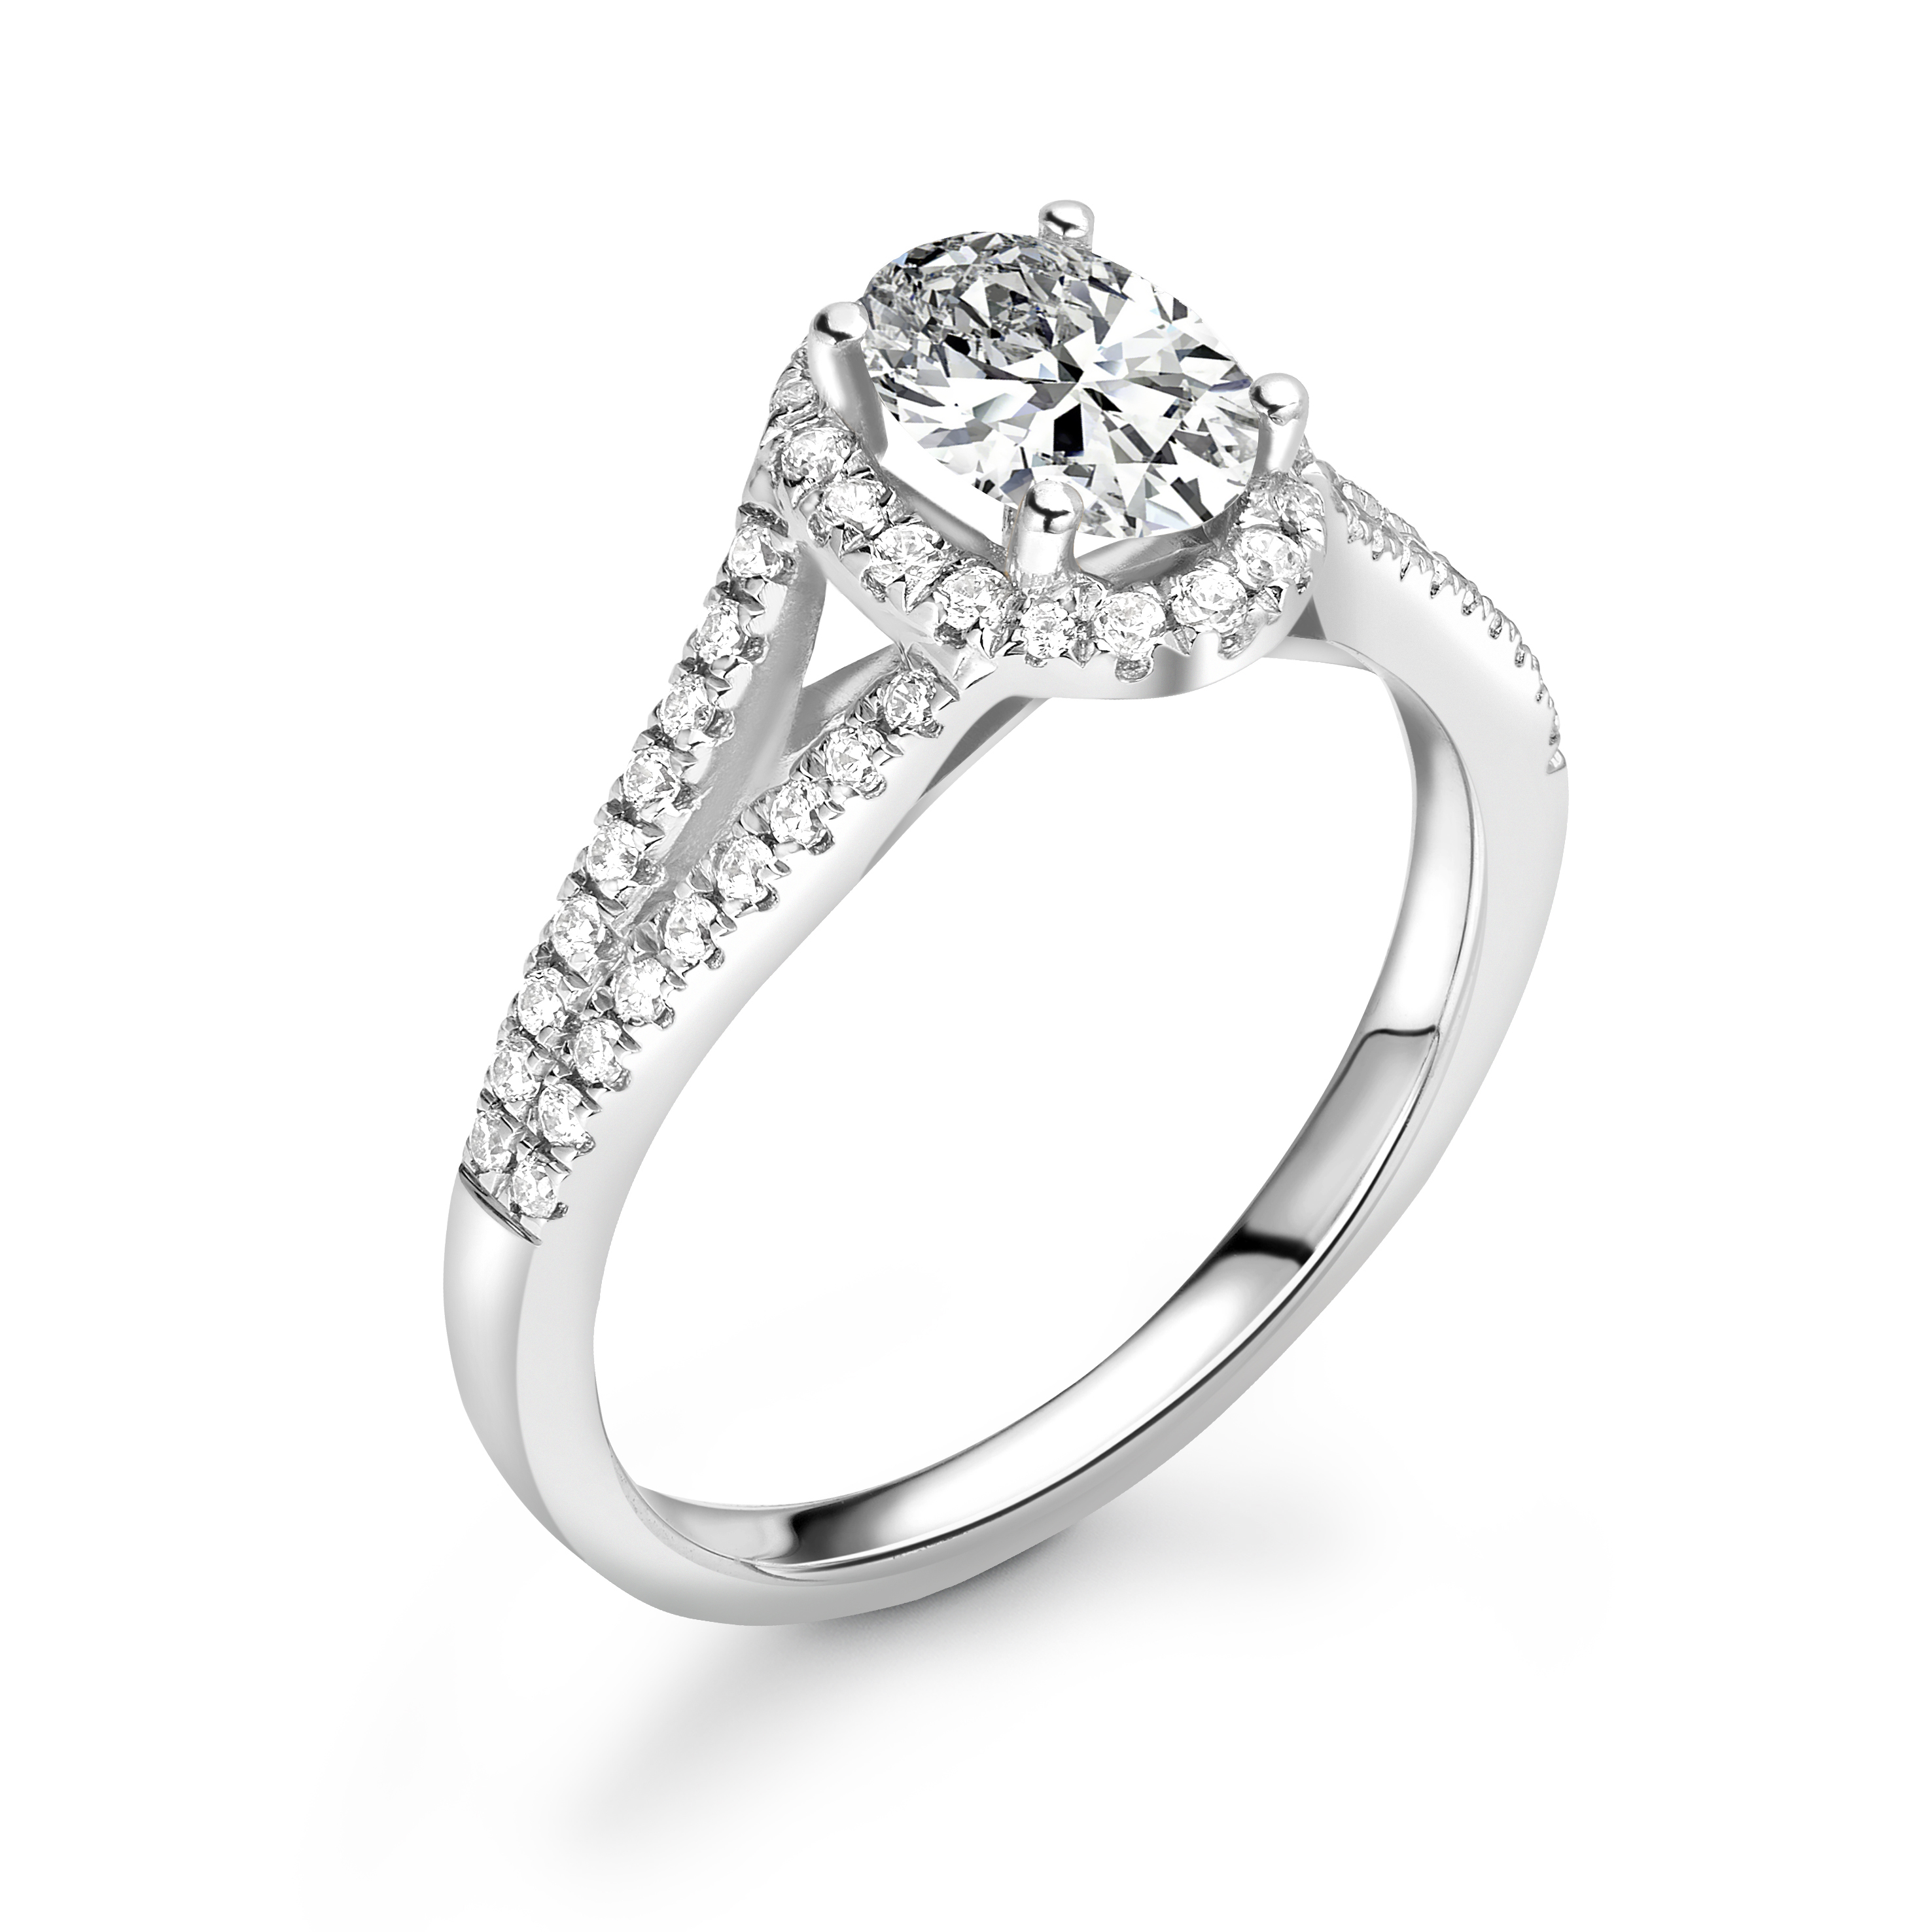 4 Prong Setting Oval Shape 2 Raw Pave Set Shoulder Halo Diamond Engagement Rings